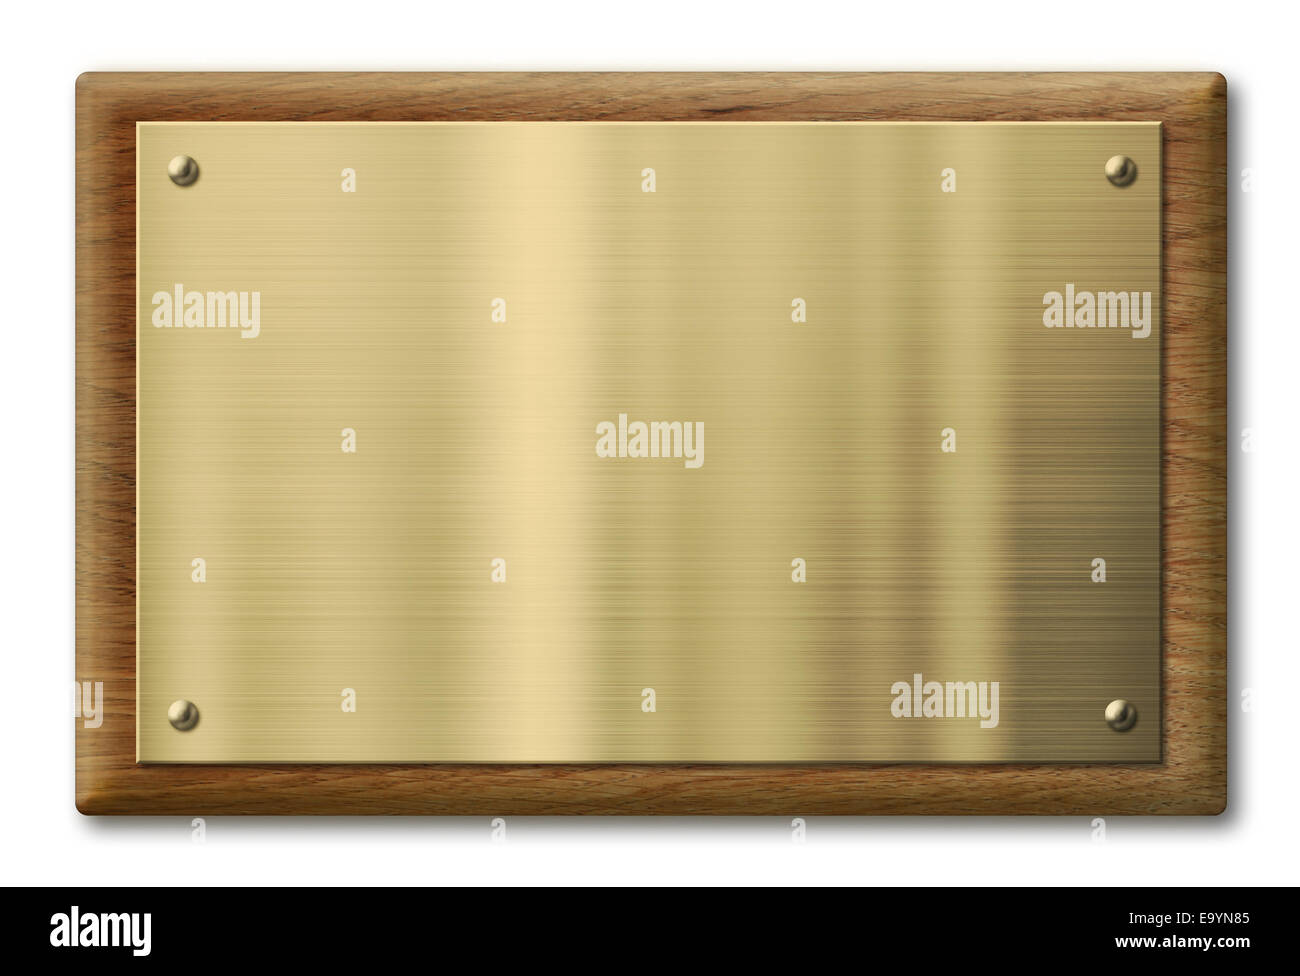 Wood plaque with brass or gold metal plate. Clipping path is included. - Stock Image